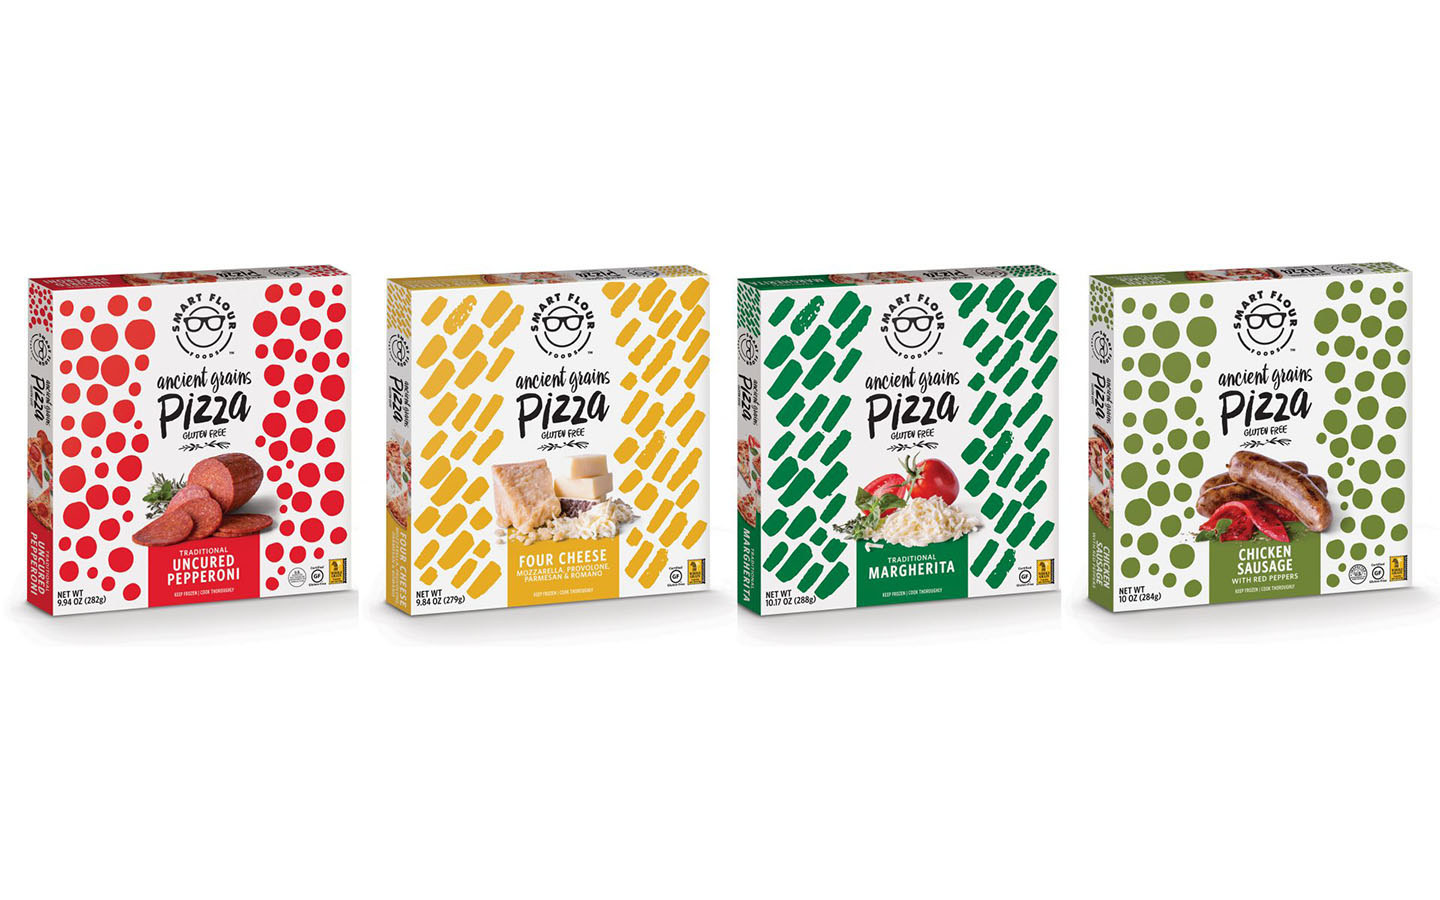 Smart Flour Satisfies Gluten-Free Pizza Lovers with Ancient Grains